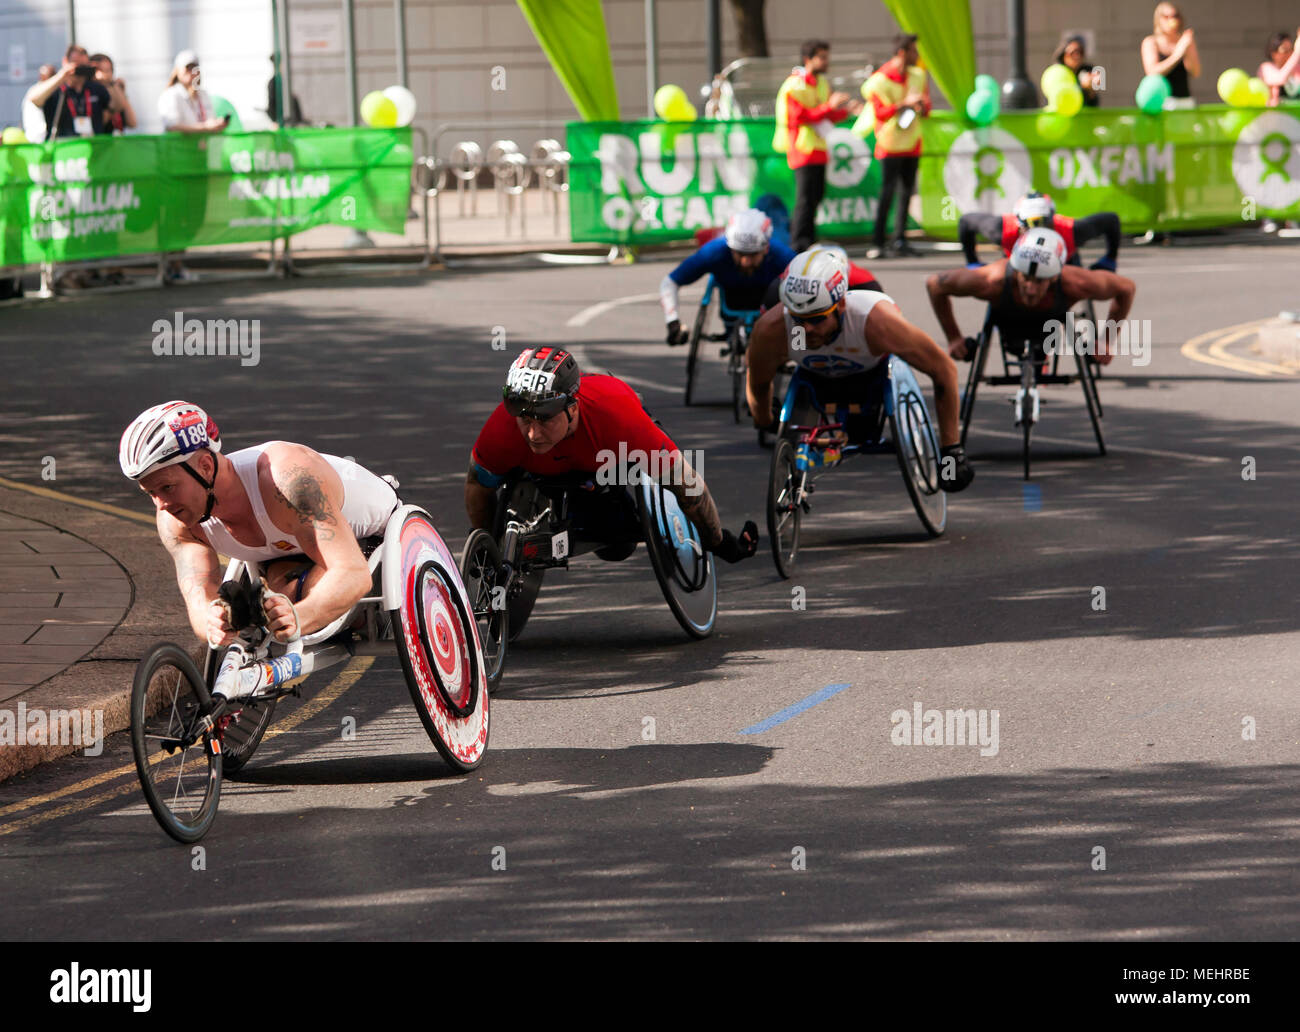 The Elite Mens Wheelchair Athletes pass through  Cabot Square, Canary Wharf, at 18 miles during the 2018 London matrathon. David  Wier (Black helmet) went on to  win the mens wheelchauir race in a time of 01.31.15. - Stock Image